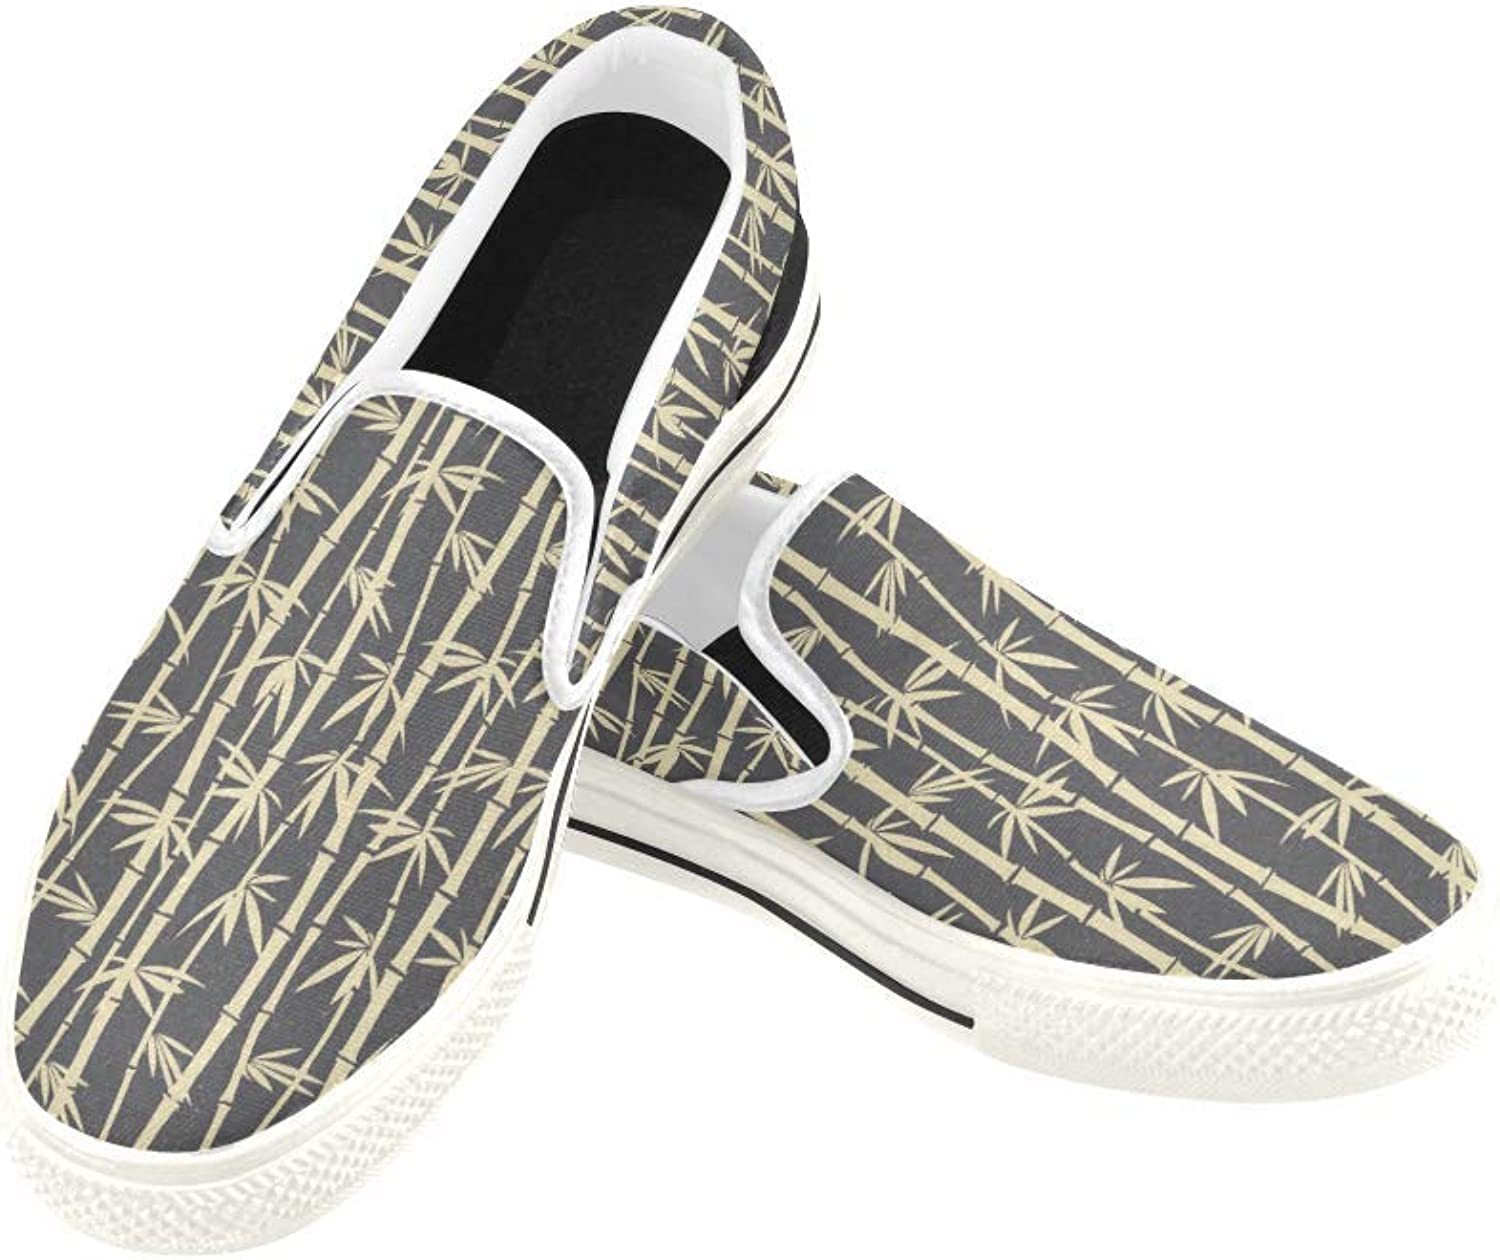 InterestPrint Womens Slip On Canvas shoes Loafers Bamboo 1 Girls Classic Casual Sneakers Flats